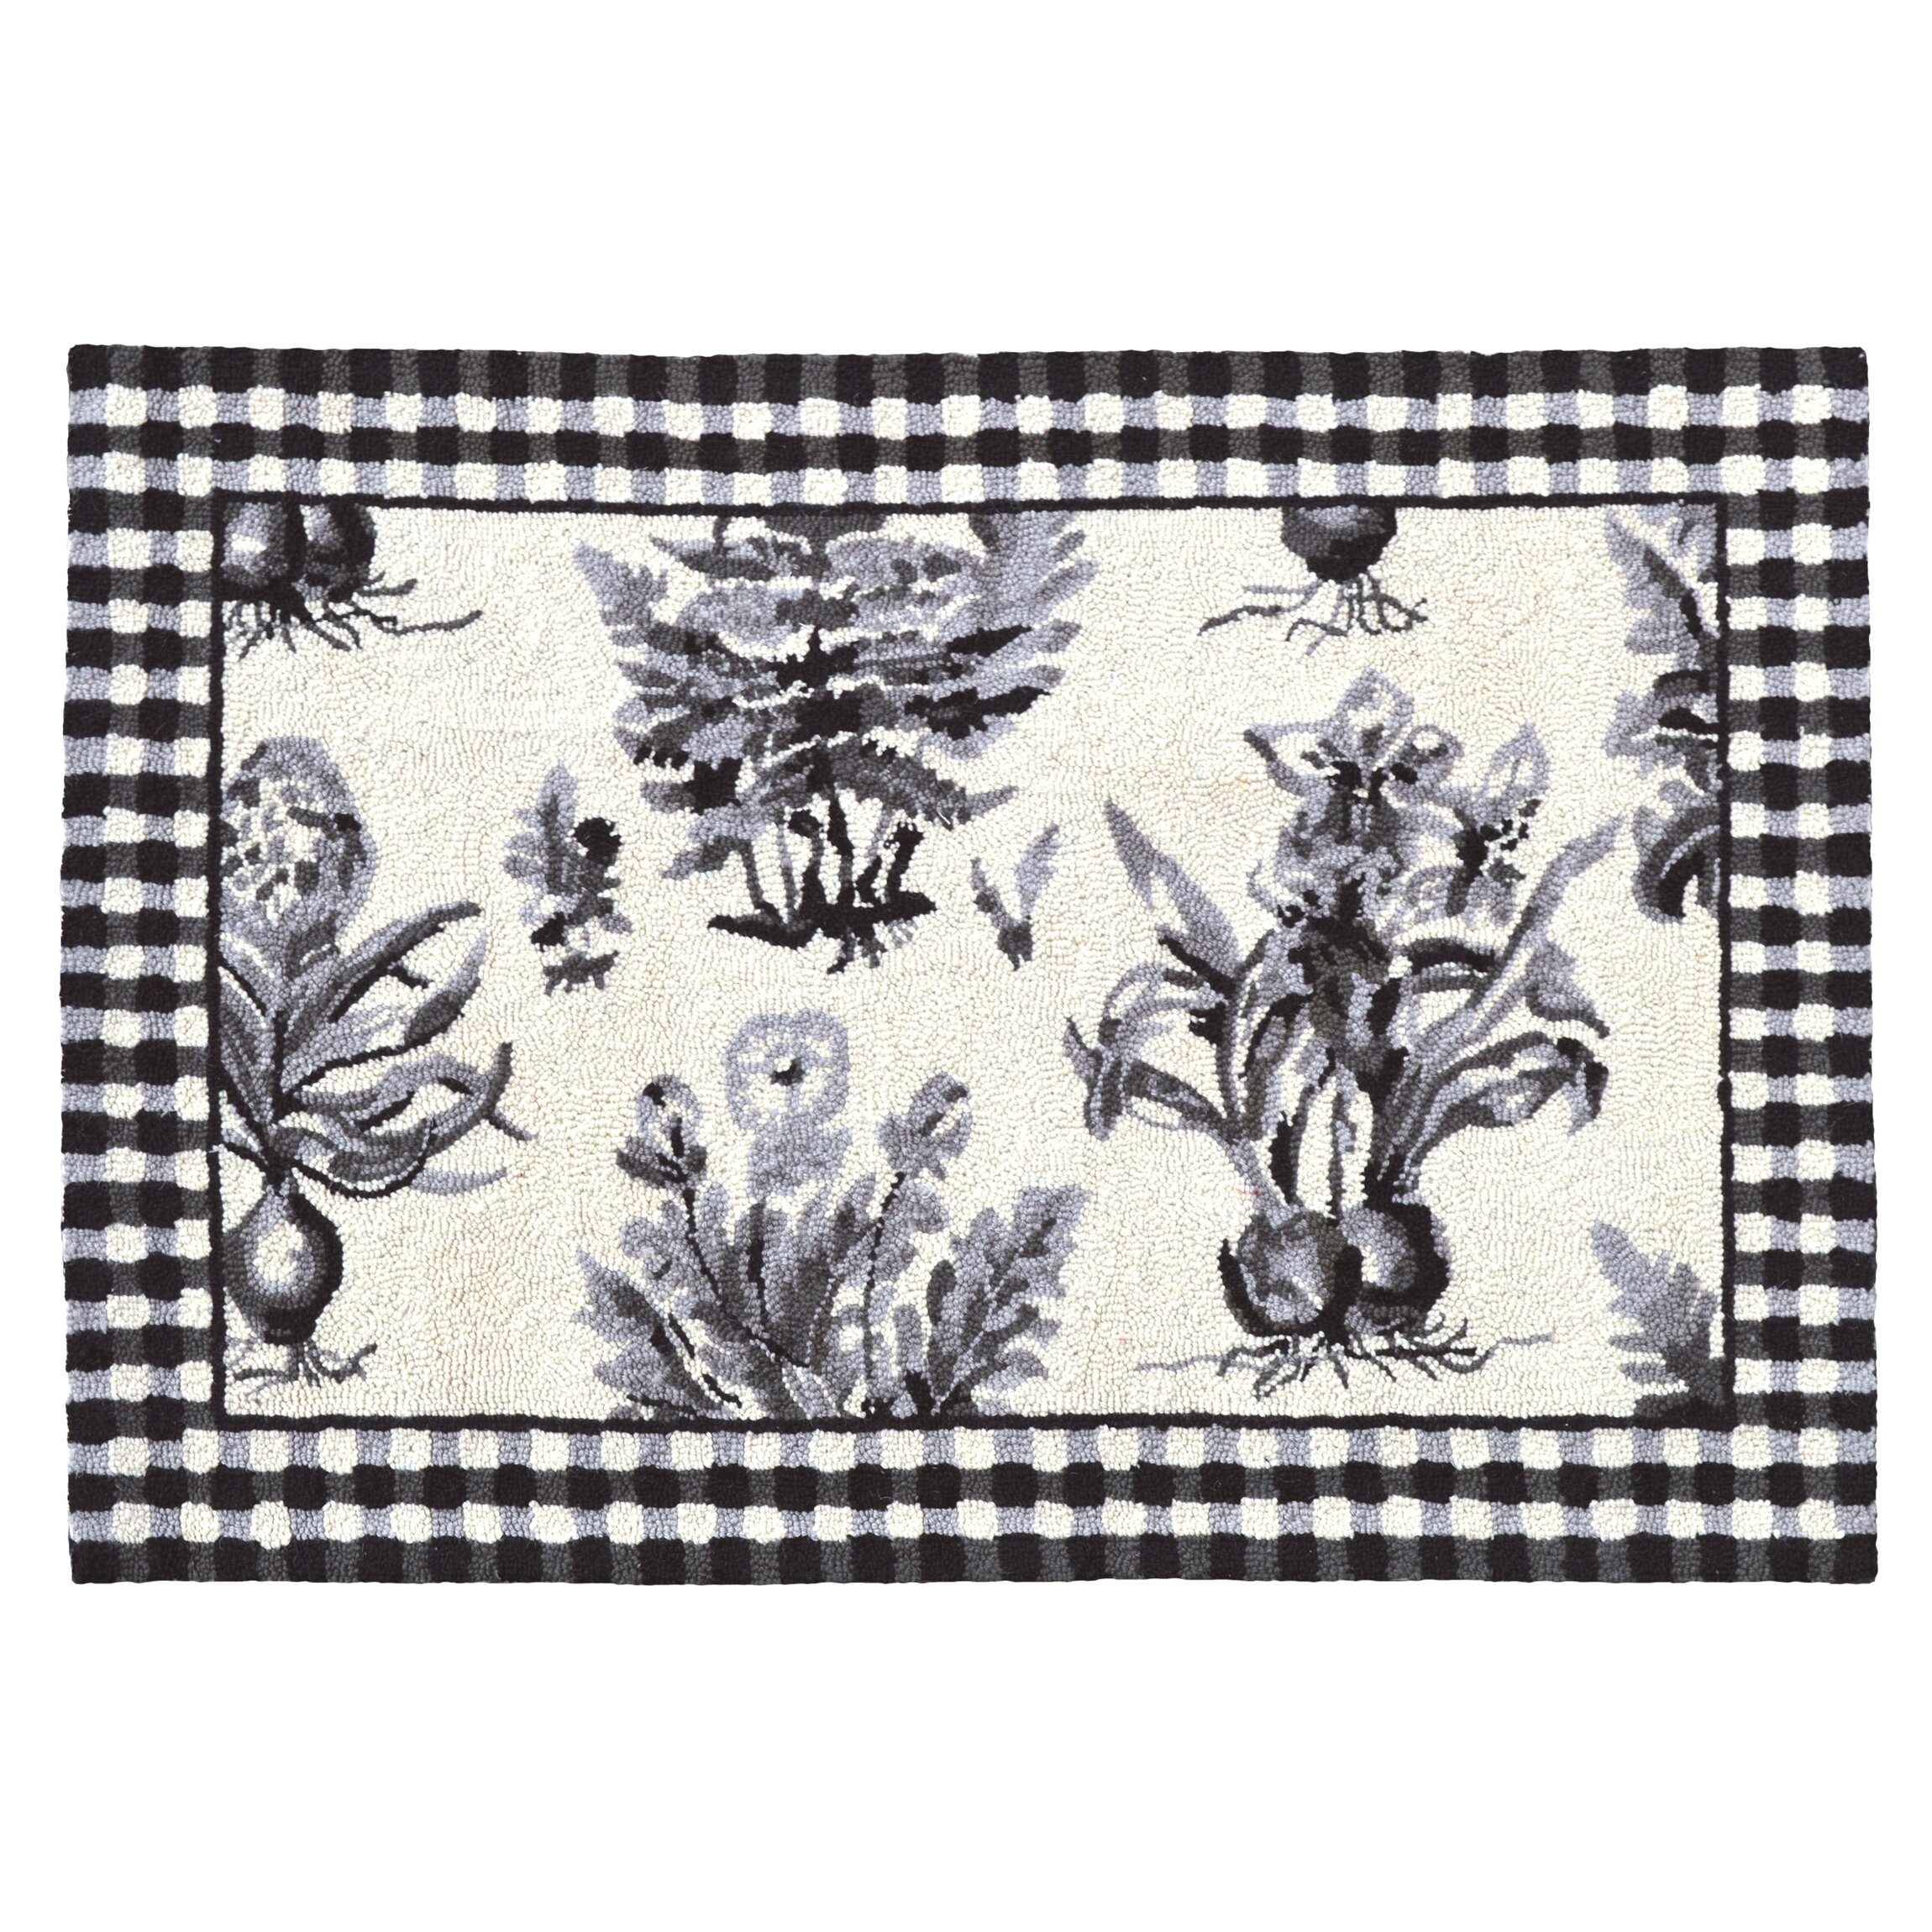 123 Creations Floral Botanical Hook Black White Area Rug